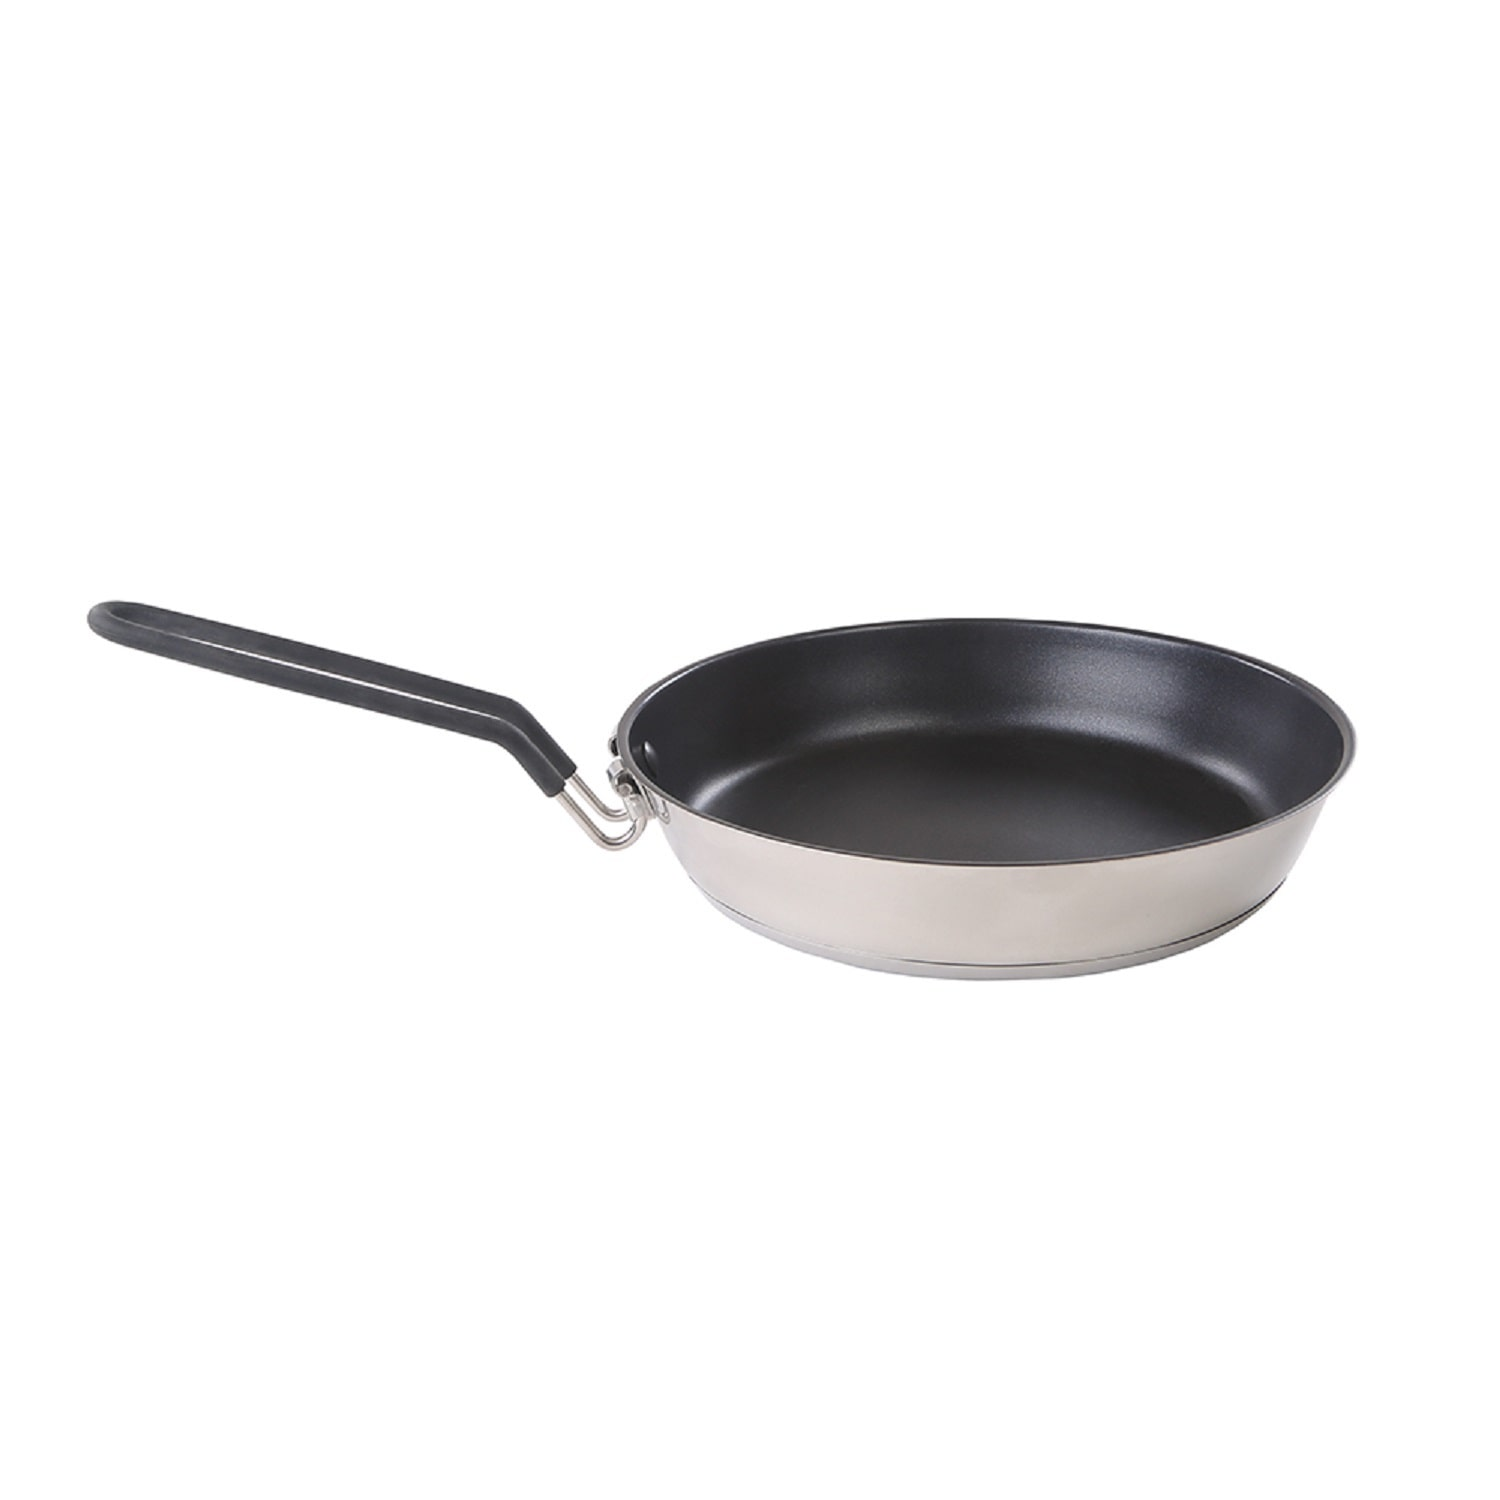 "Stansport Stainless Non-Stick Coated Fry Pan with Folding Handle-10"" by Stansport"